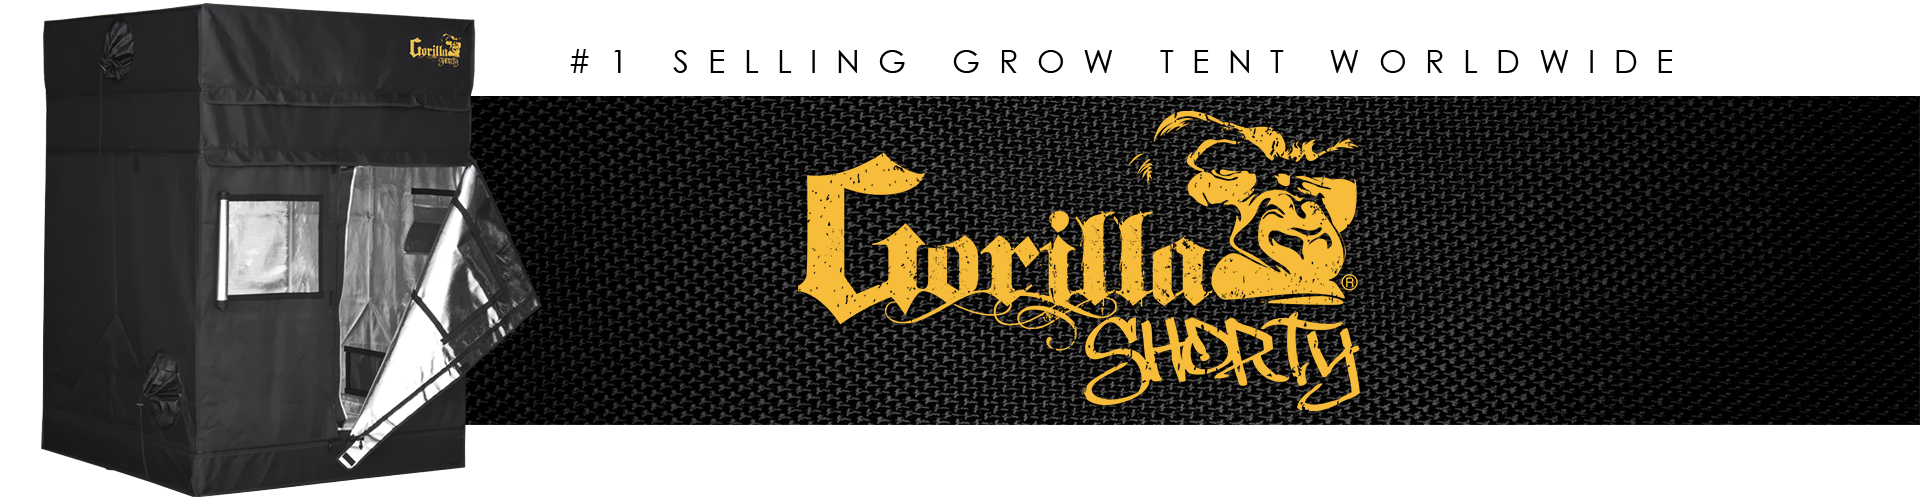 The Gorilla Grow Tent Shorty